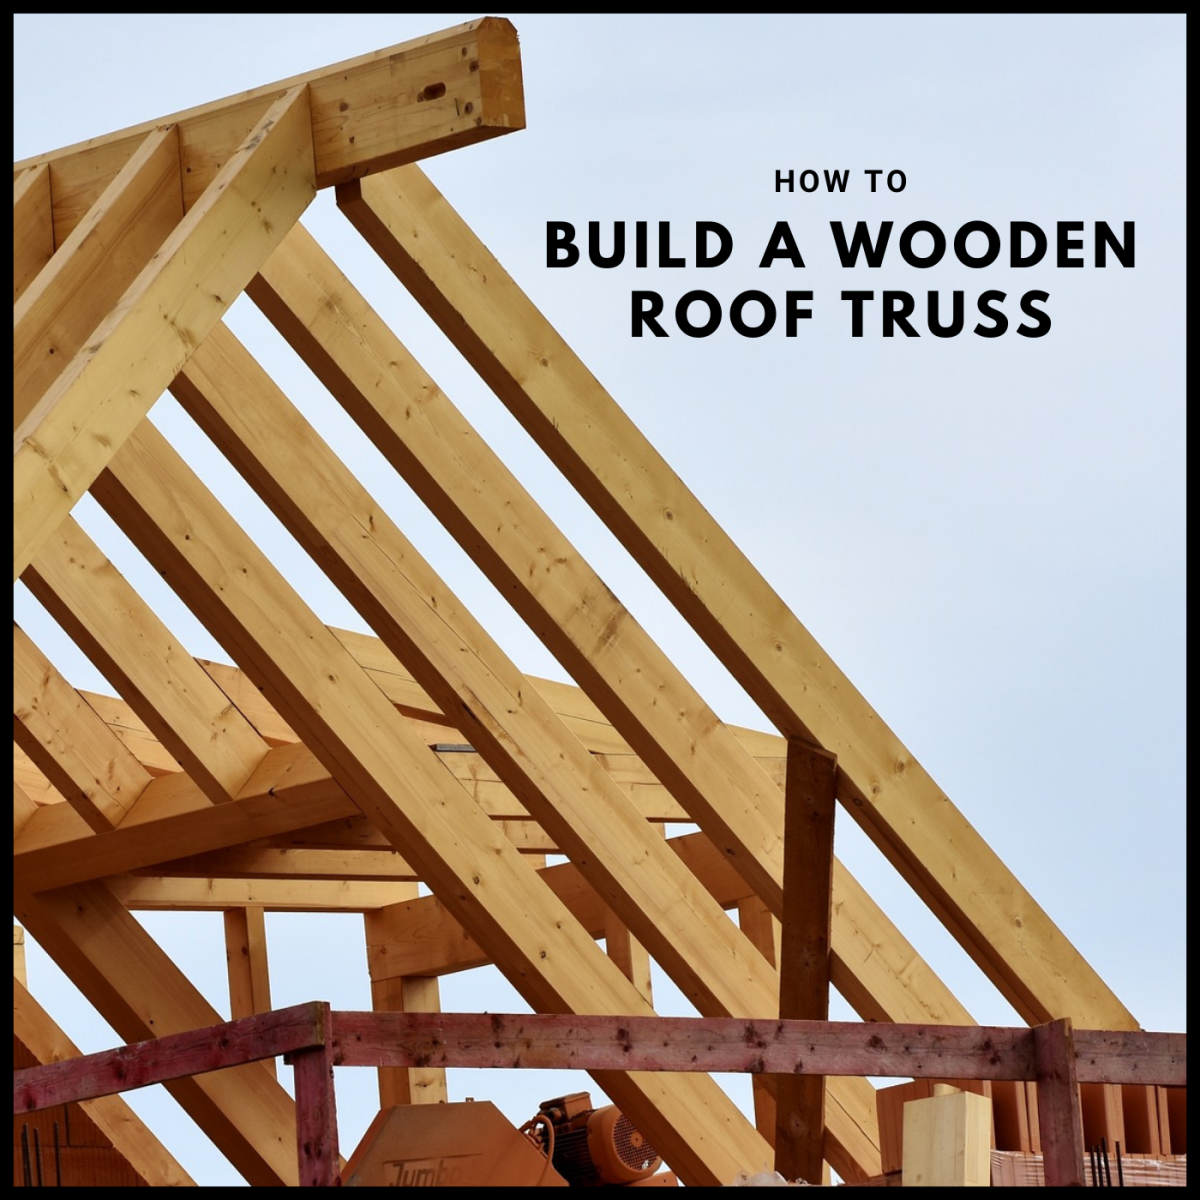 How to build a wooden roof truss.